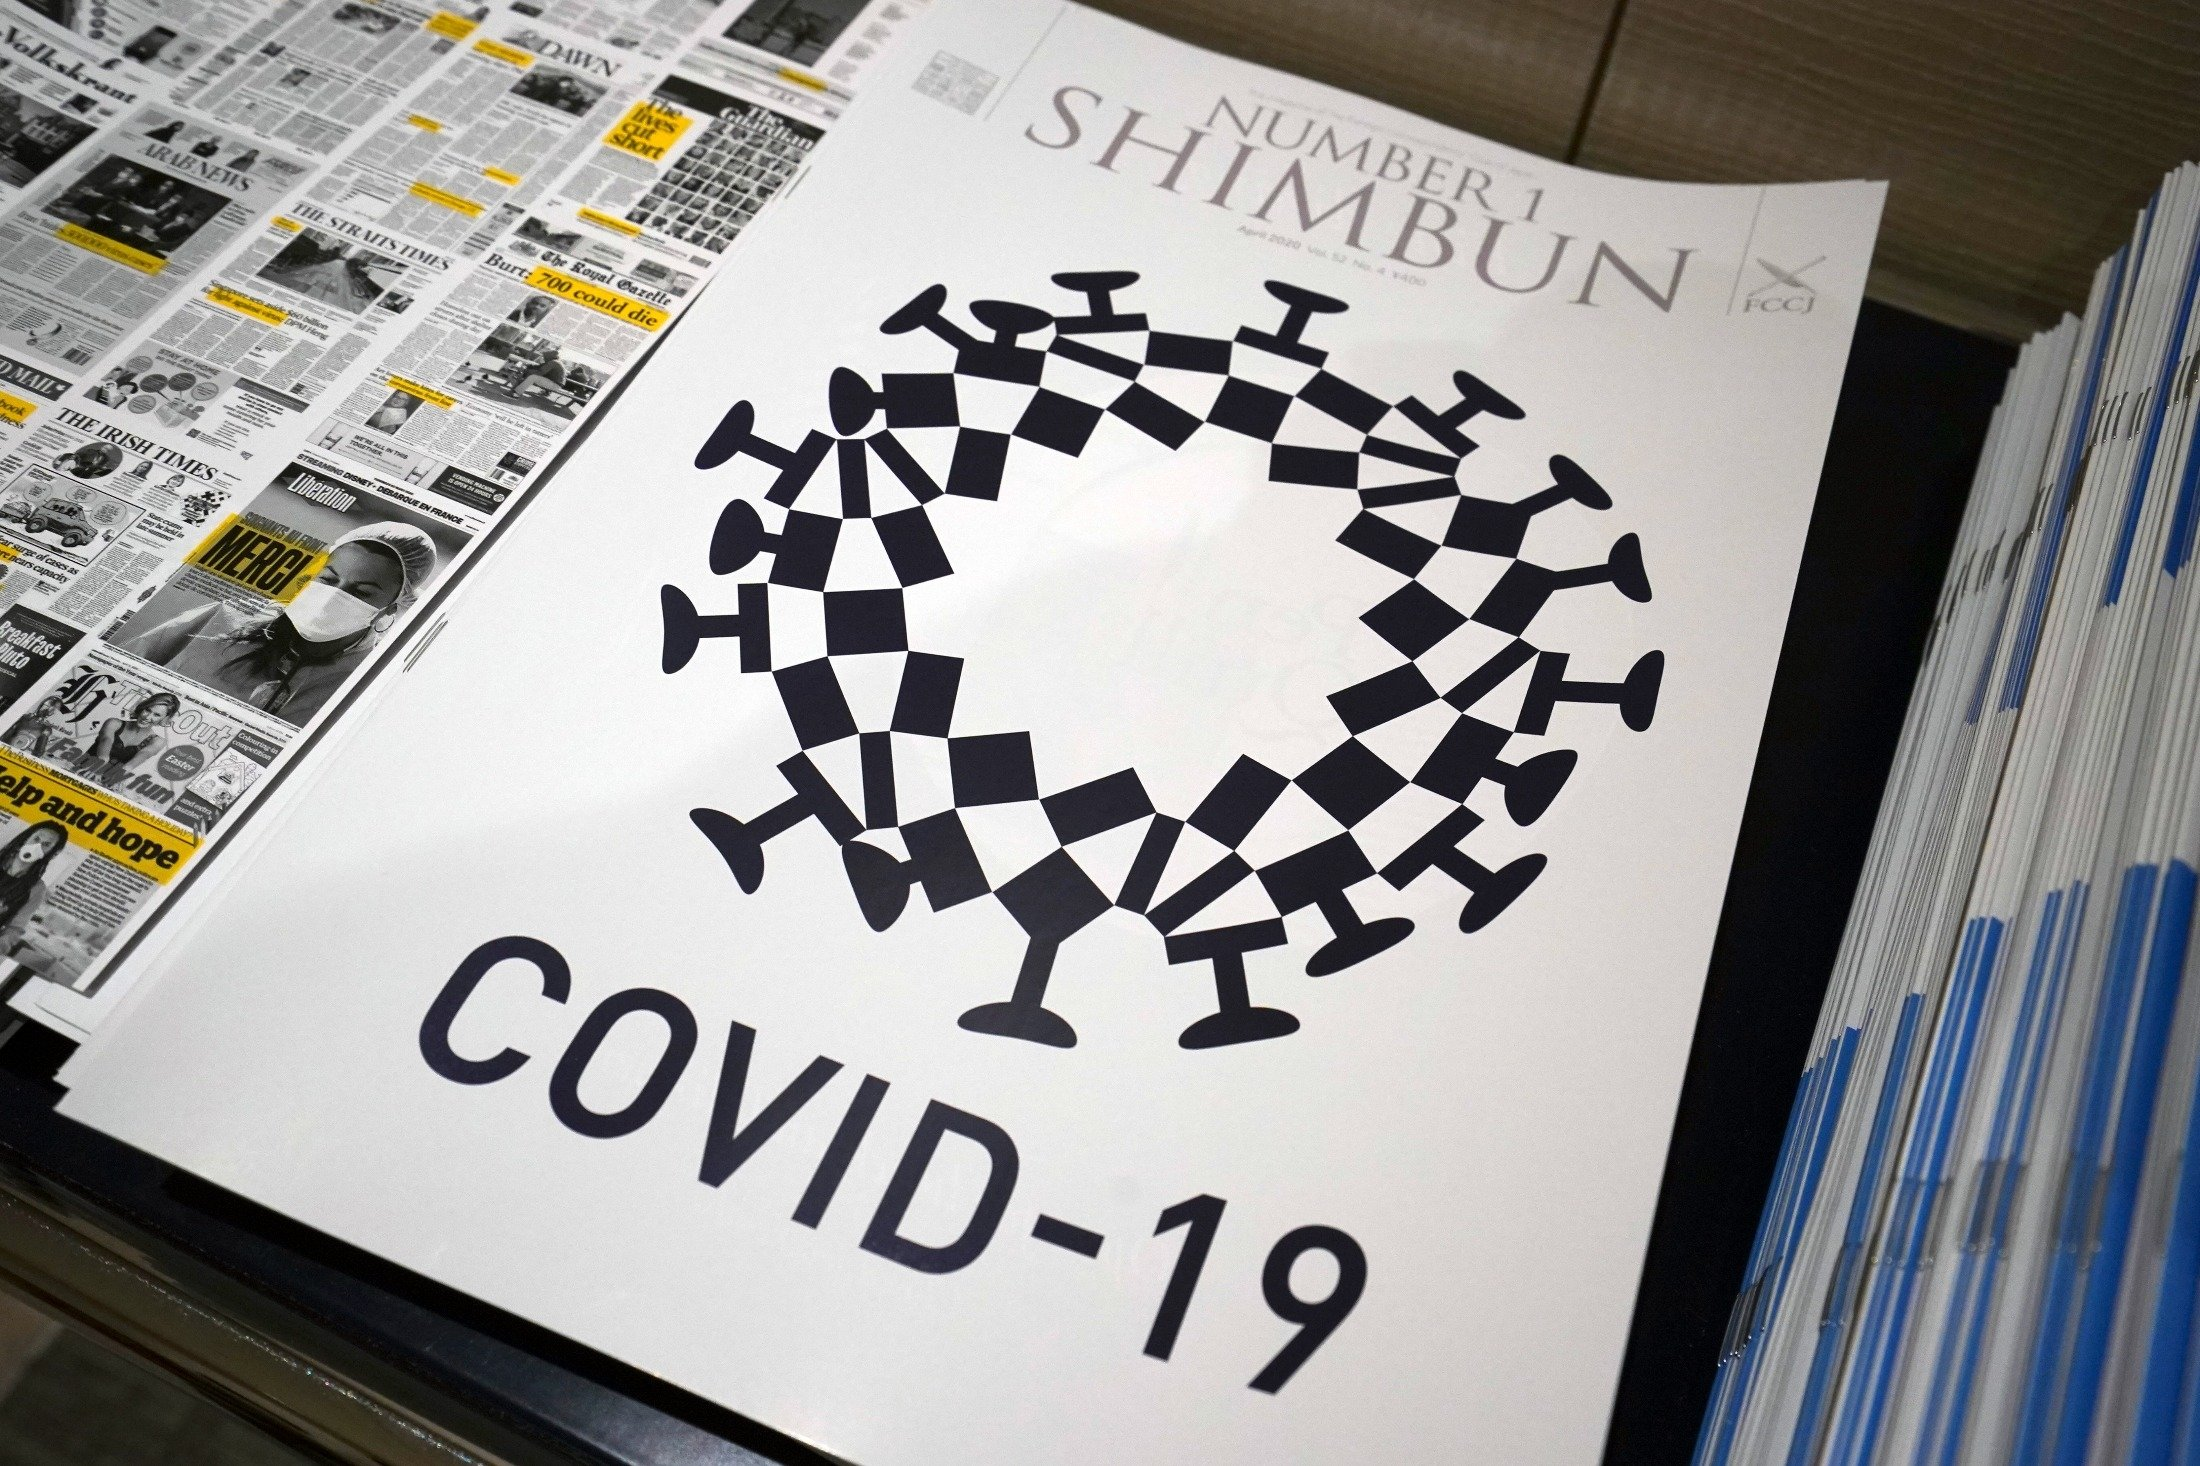 The cover design of Number 1 Shimbun is seen in Tokyo, Japan, May 19, 2020. (AP Photo)